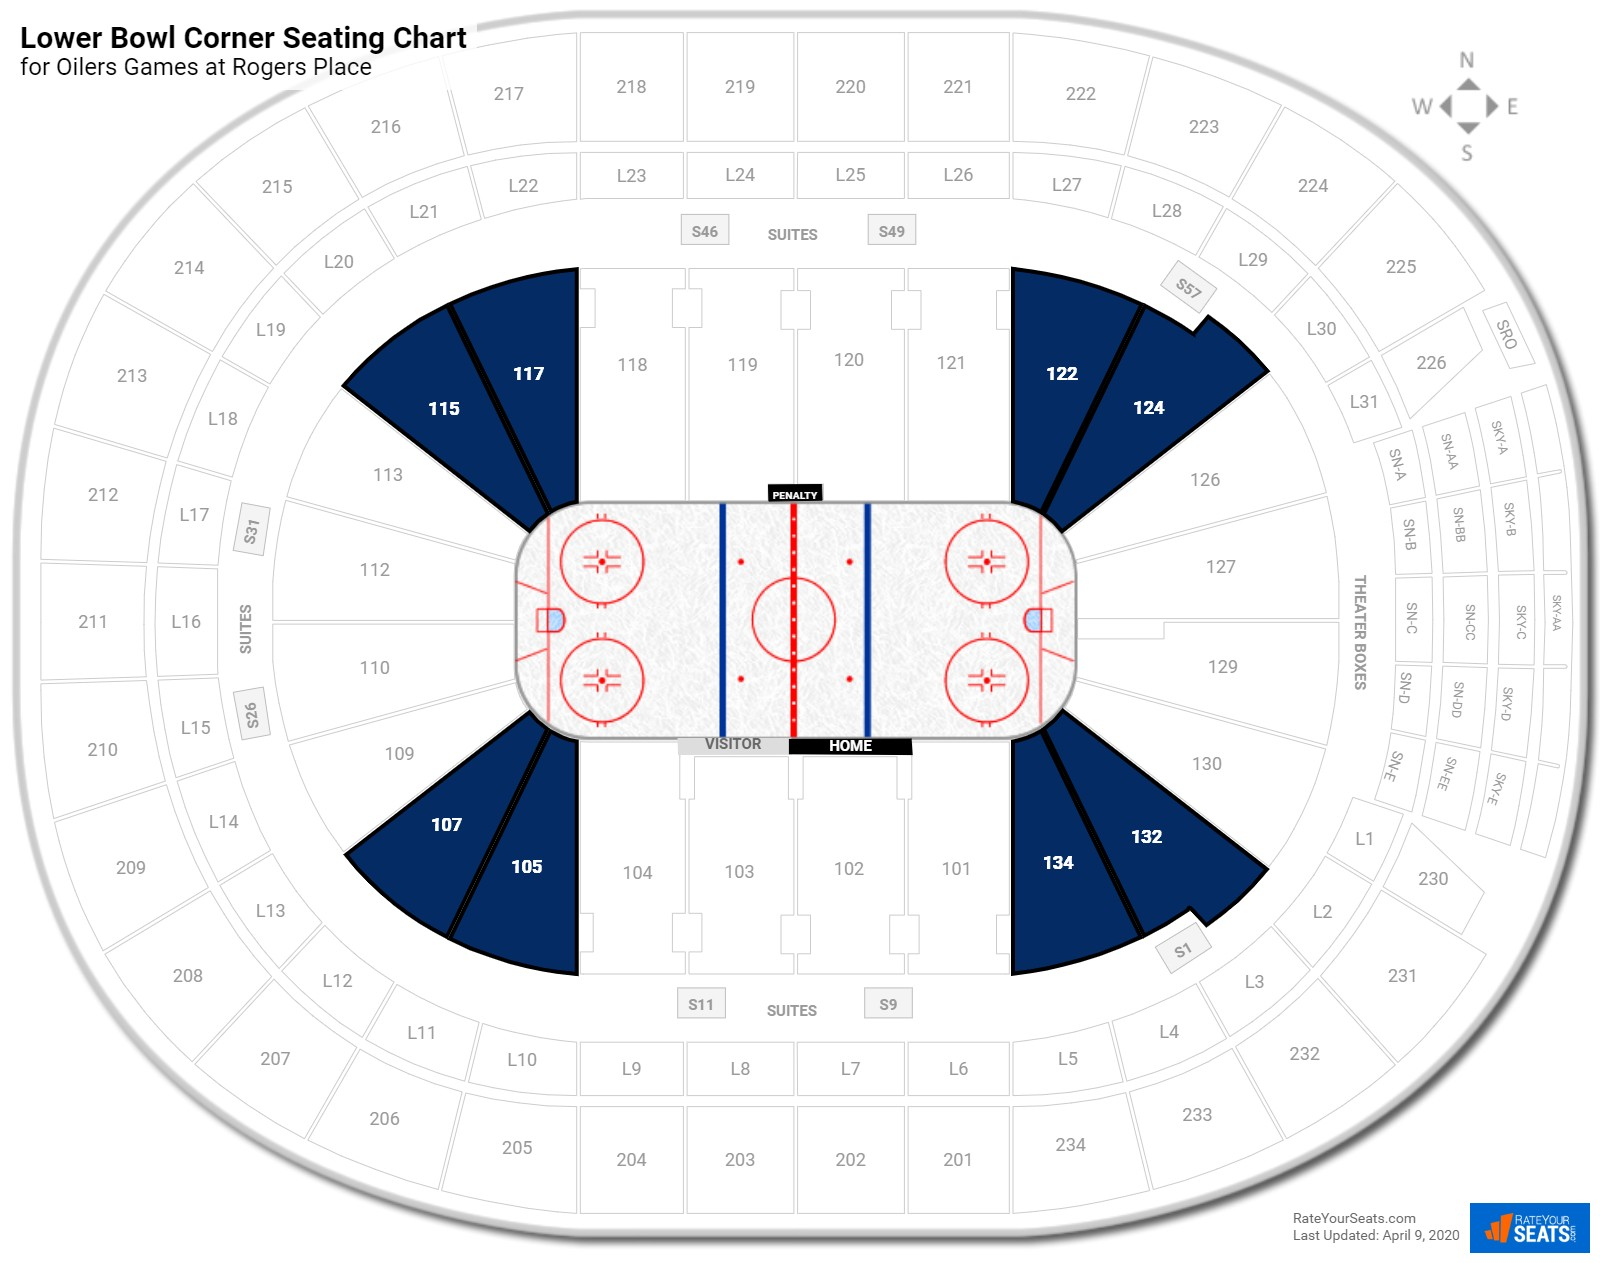 Rogers Place Lower Corner seating chart